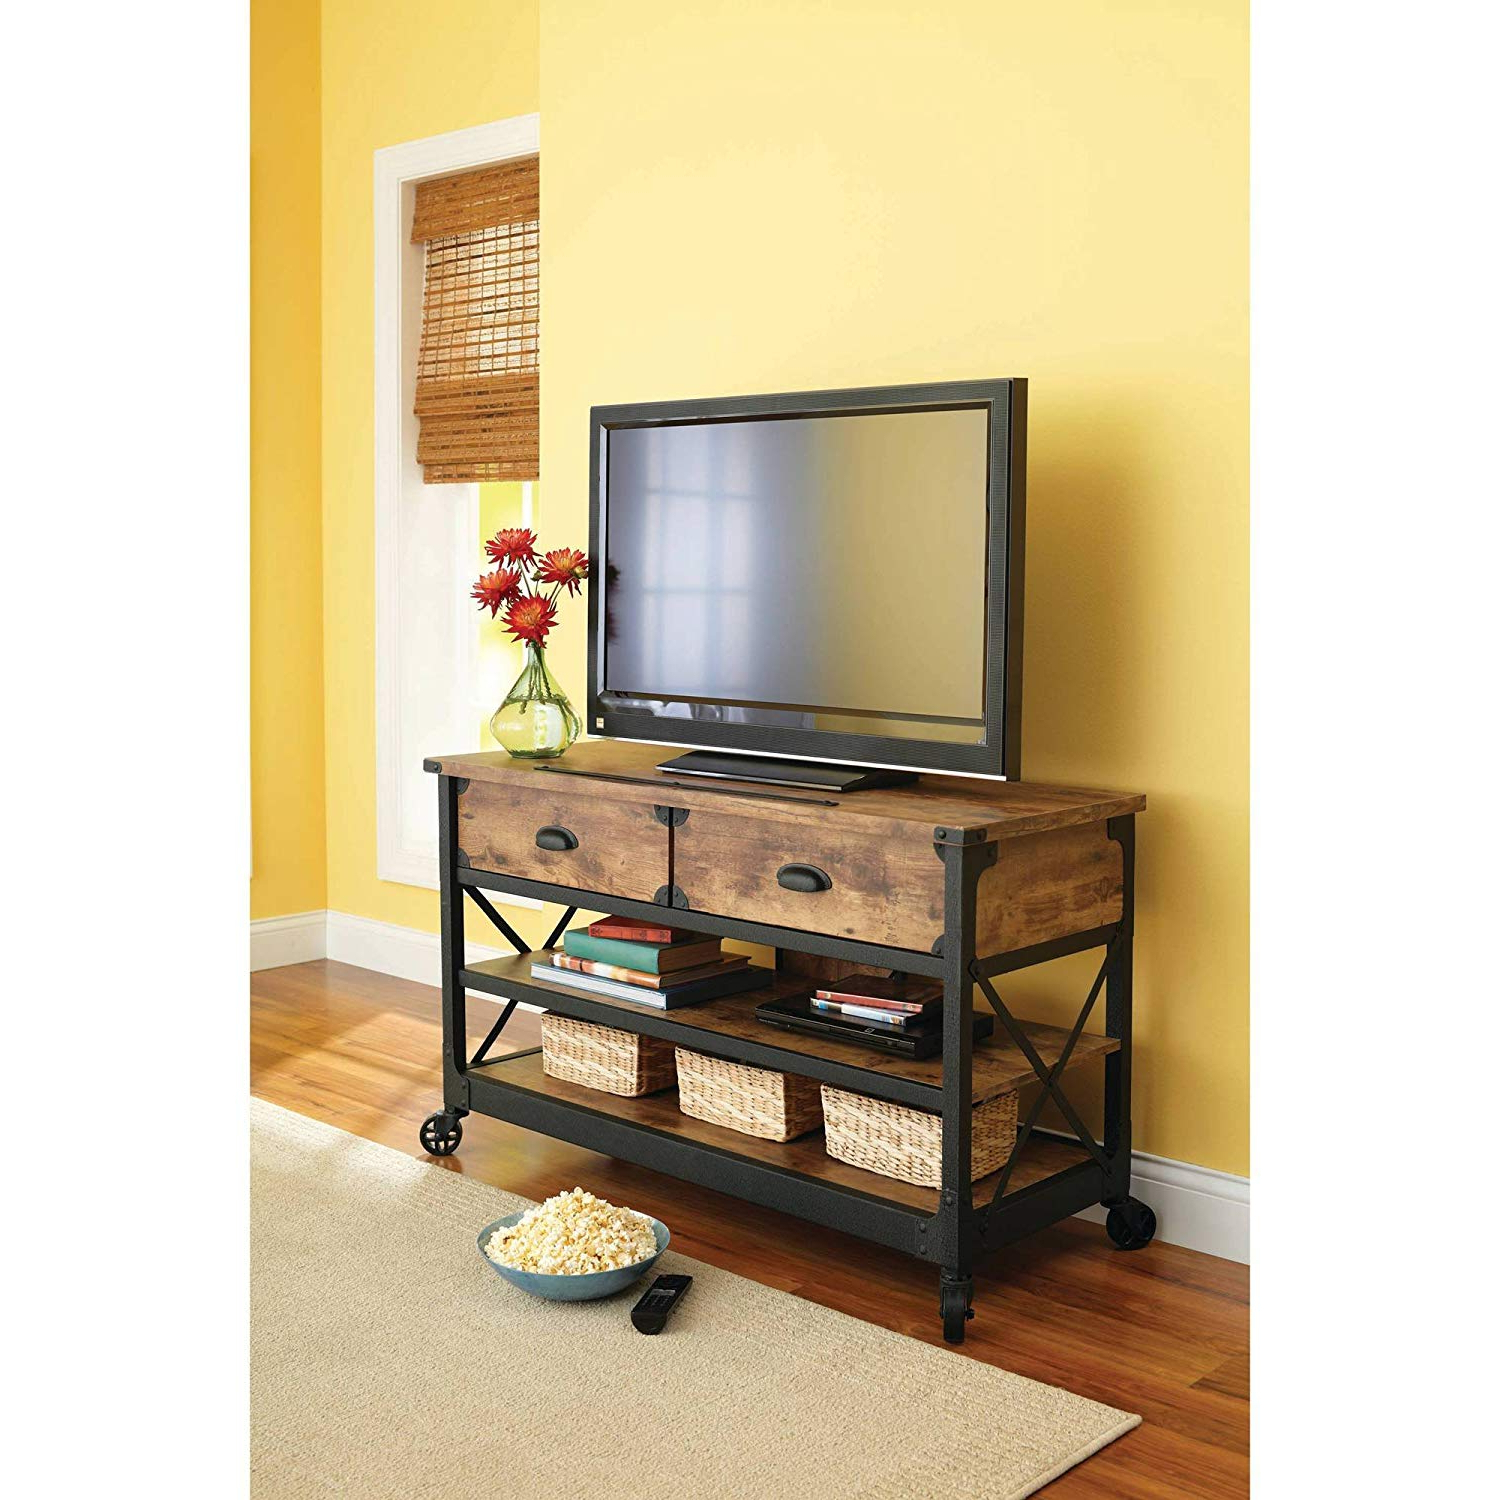 Home Design & Gardening: Marvelous Rustic Pine Tv Stand As If Amazon Throughout Fashionable Pine Wood Tv Stands (View 16 of 20)